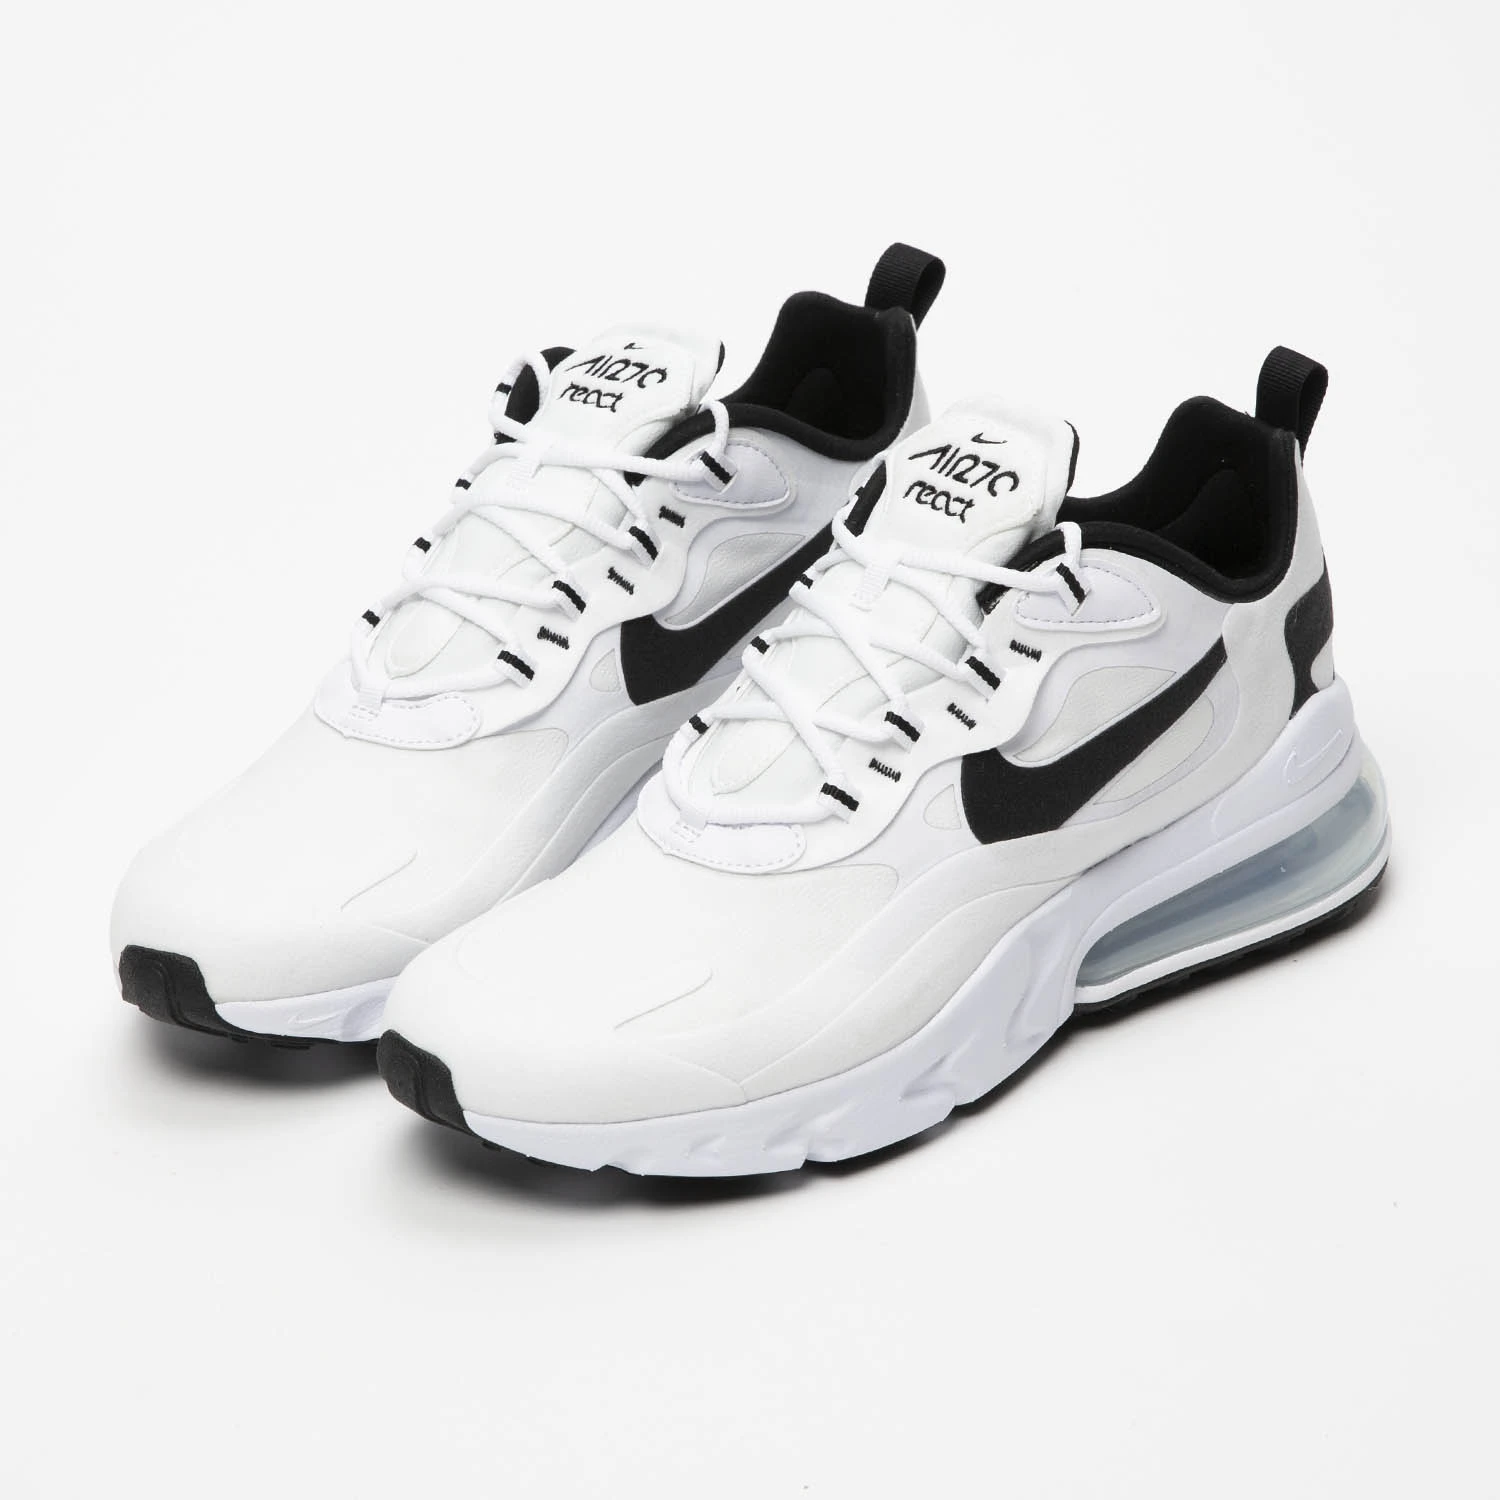 """Nike Air Max 270 React """"White Black"""" : Sale Price: $96 (Retail $160)  – FREE SHIPPING – Discount applied at checkout"""